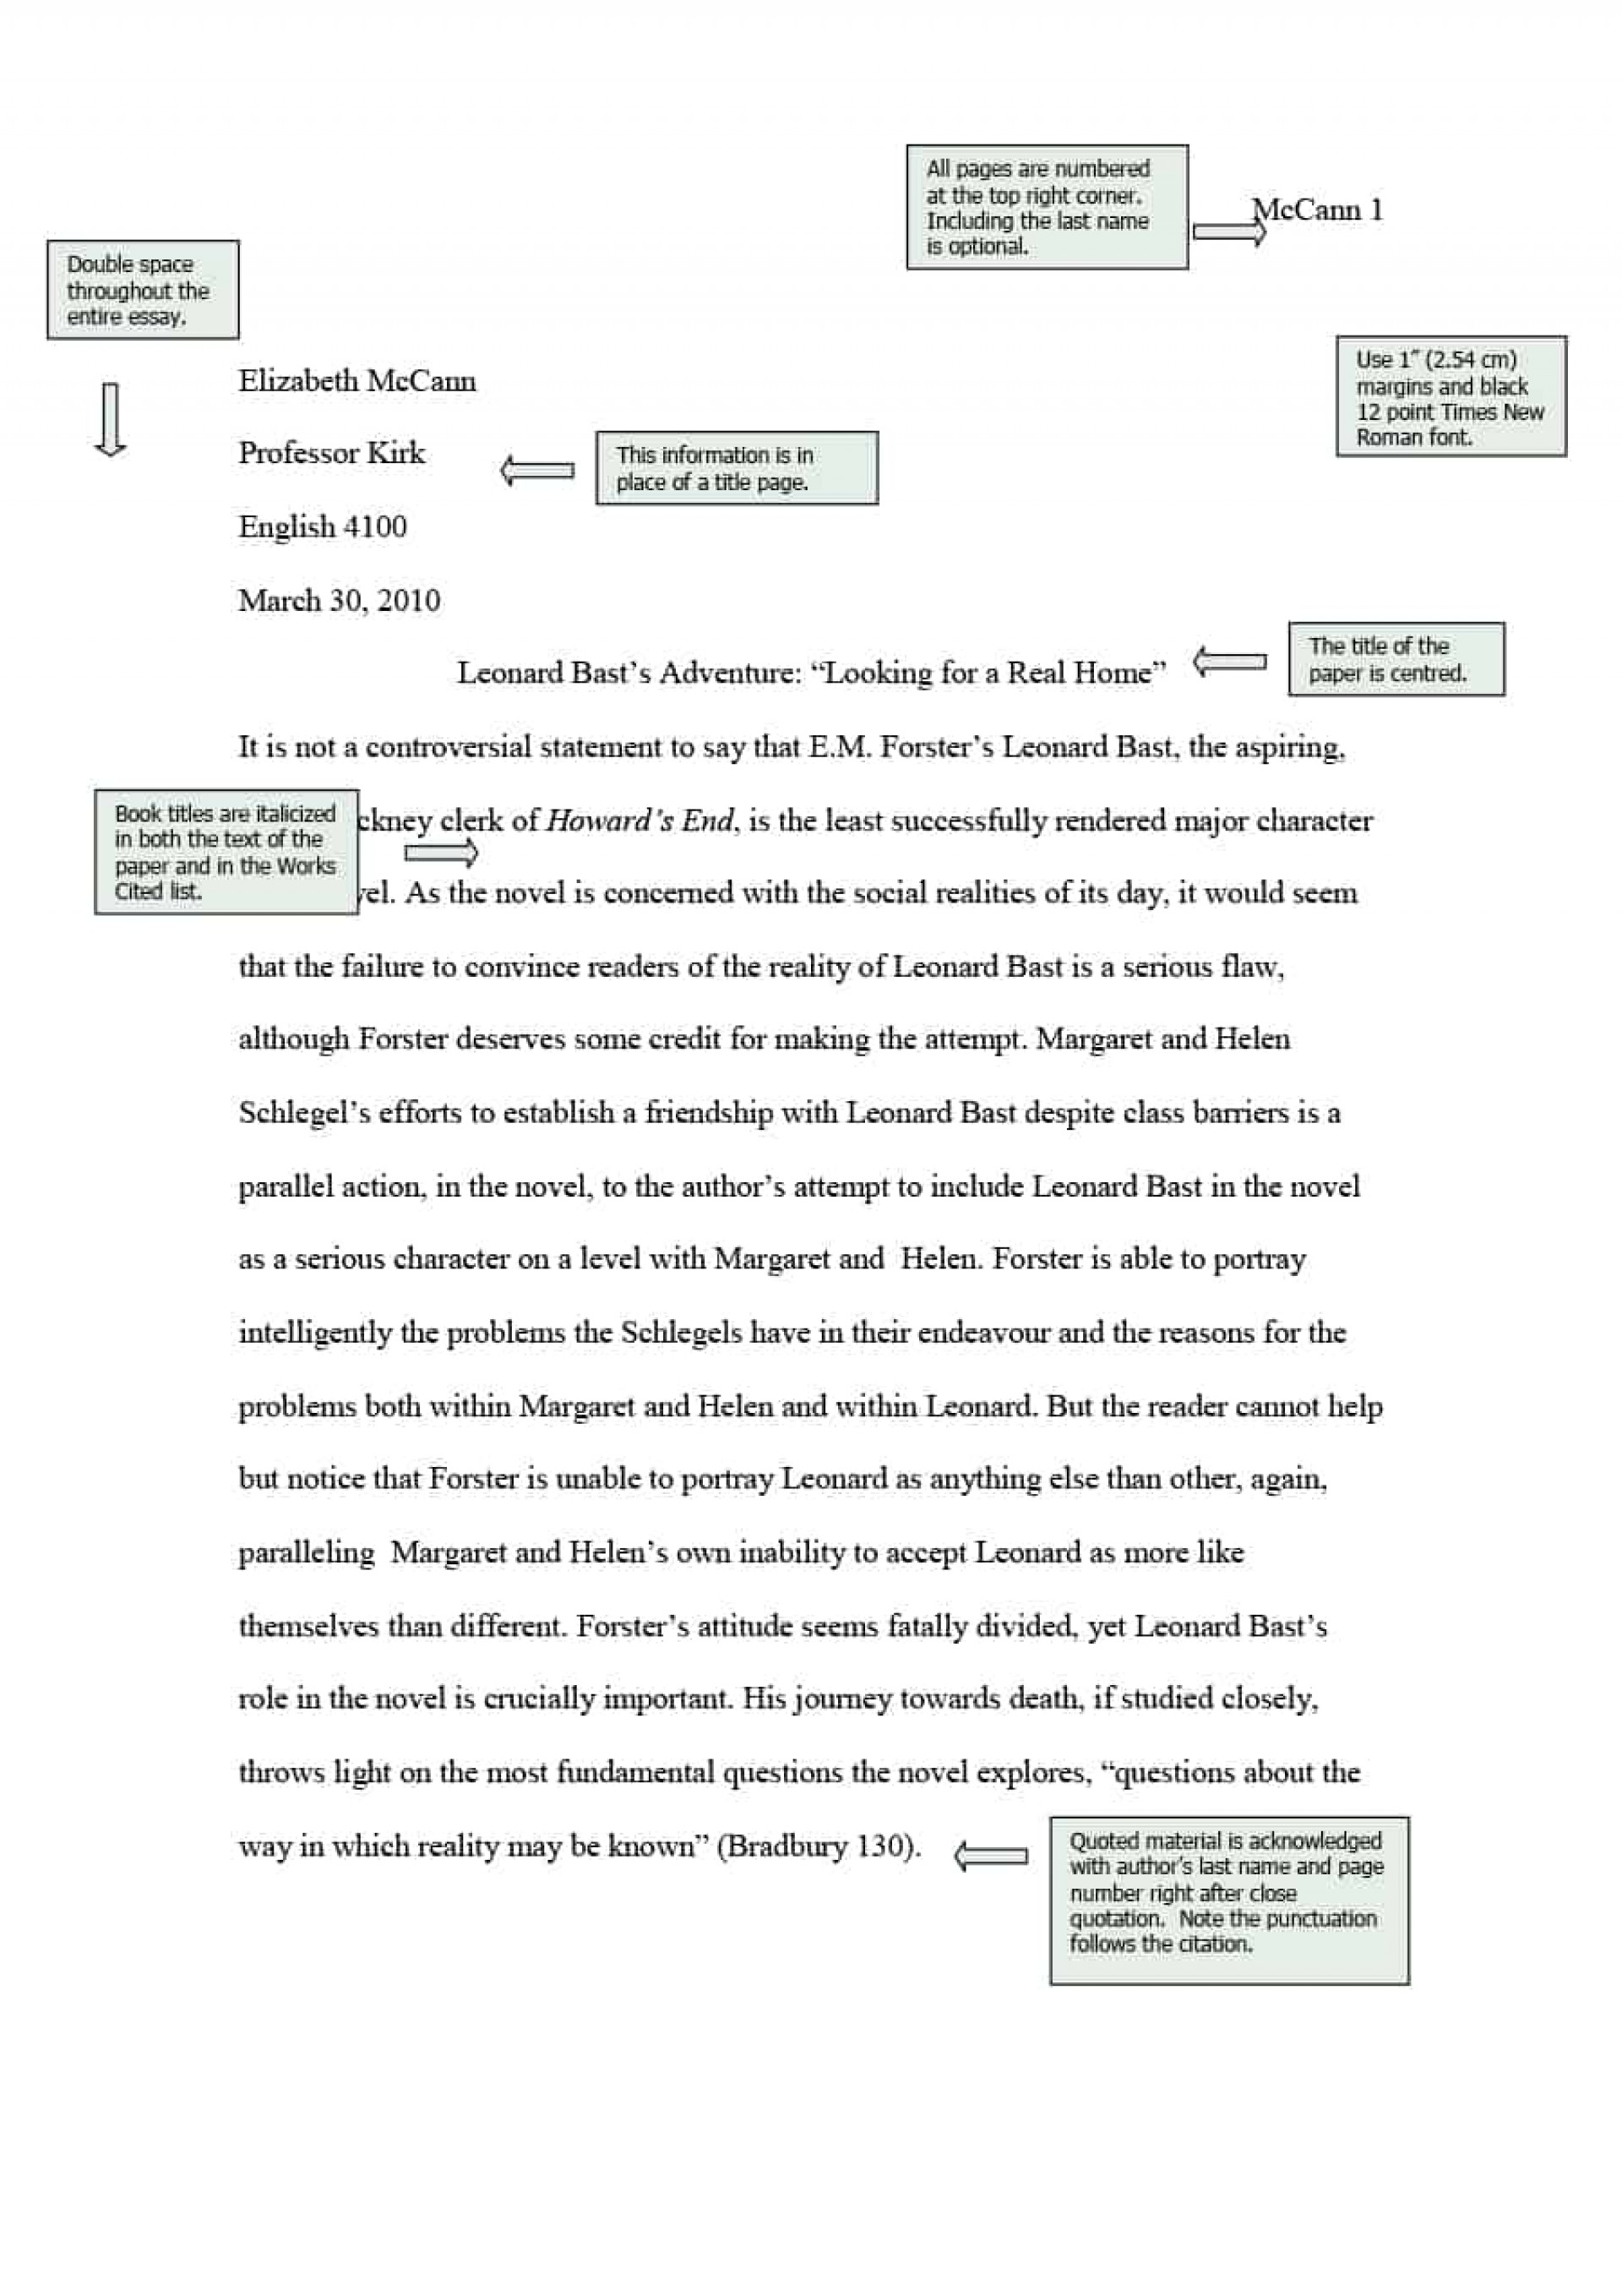 008 Mla Essay Example Format Template Magnificent 2017 In Text Citation Title Page 1920